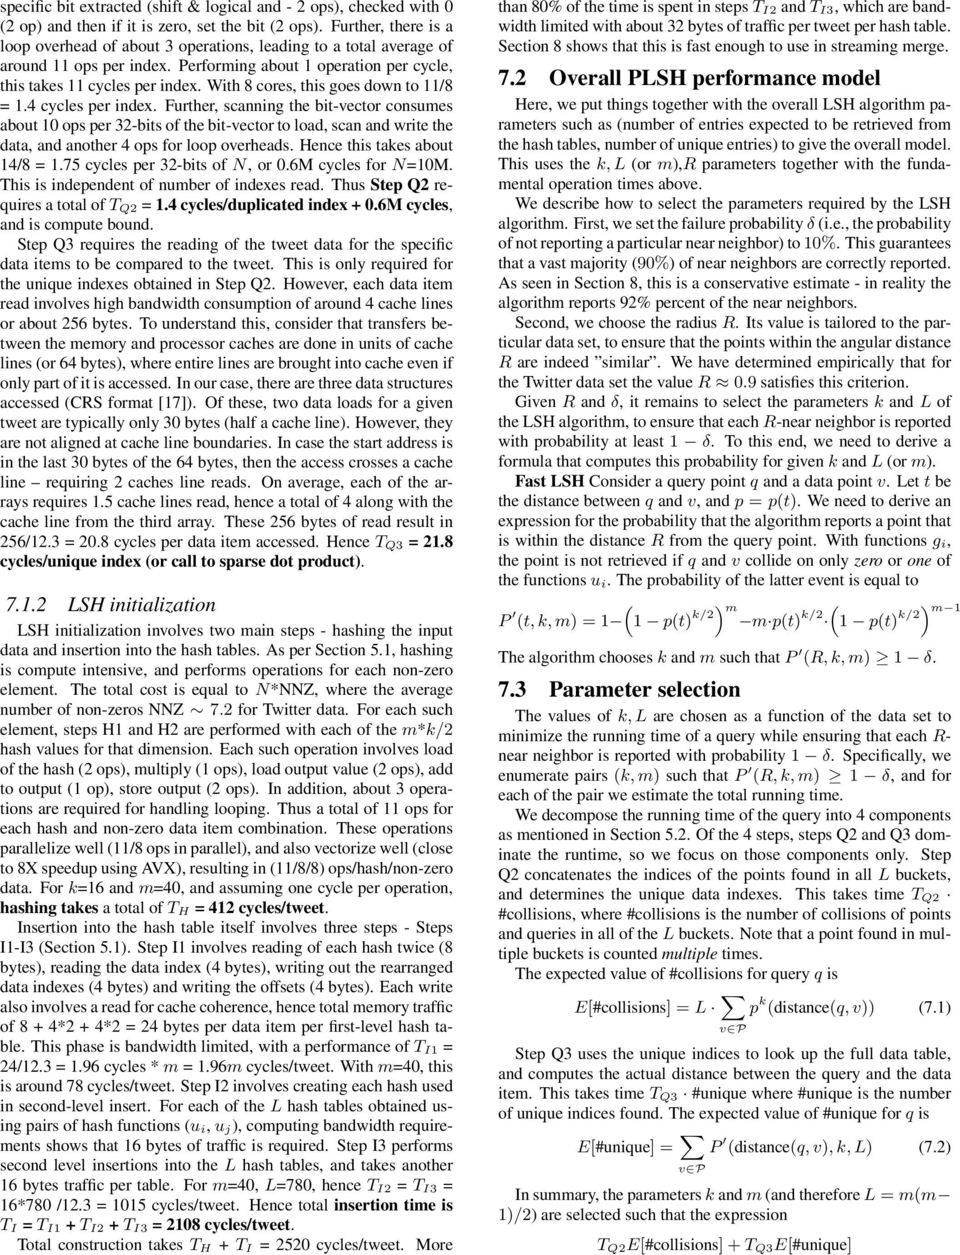 With 8 cores, this goes down to /8 = 1.4 cycles per index.